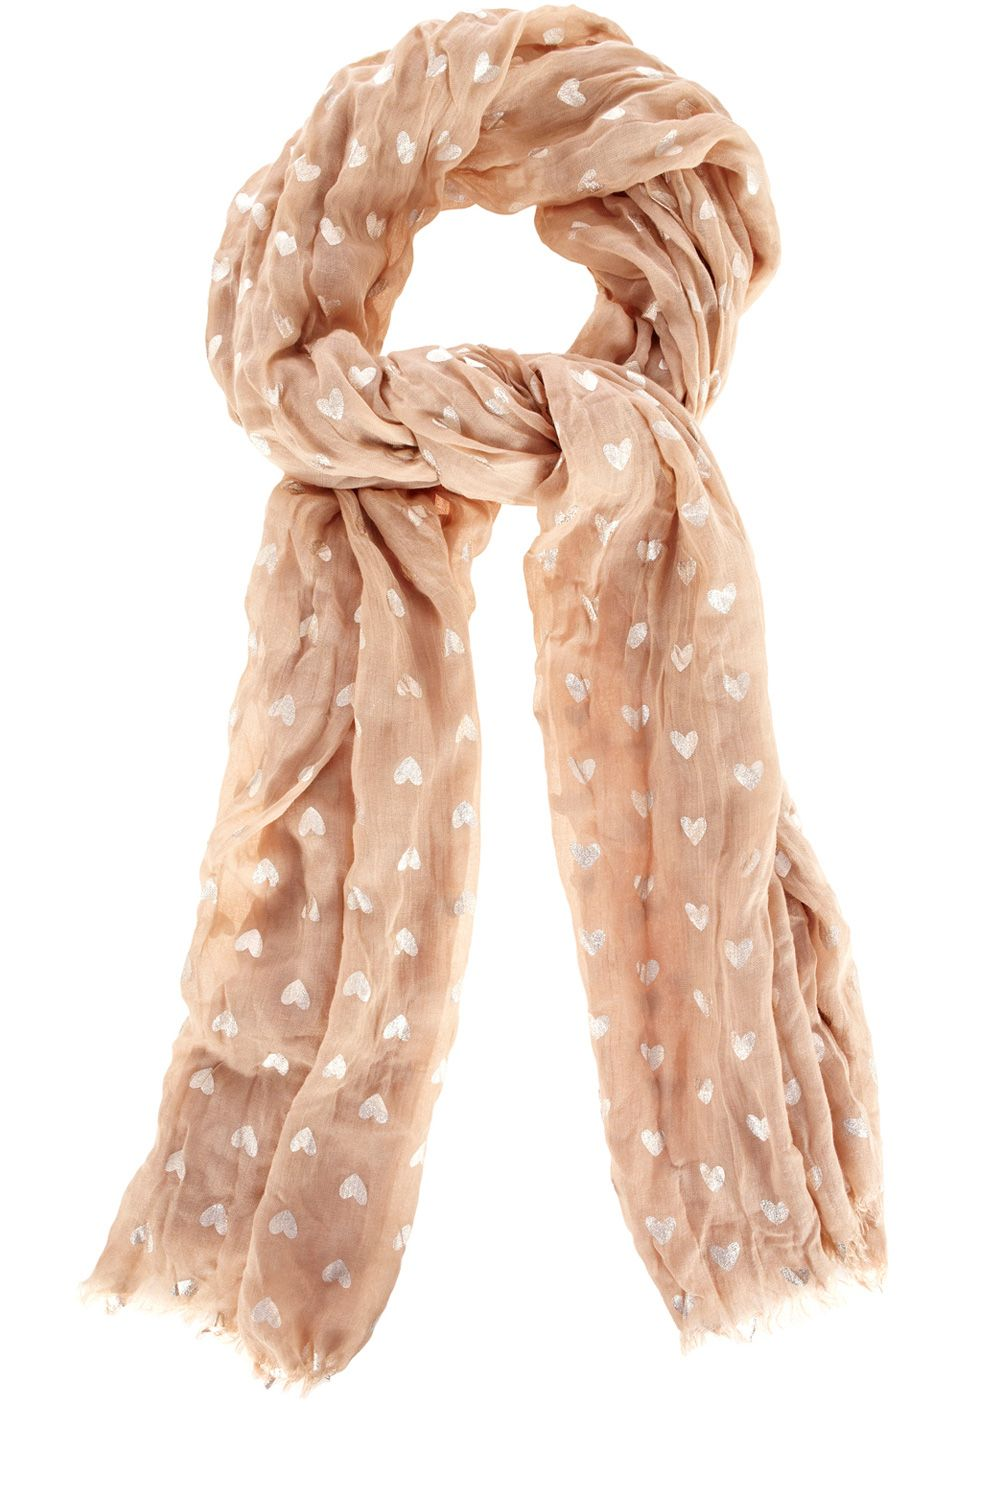 Metallic heart scarf